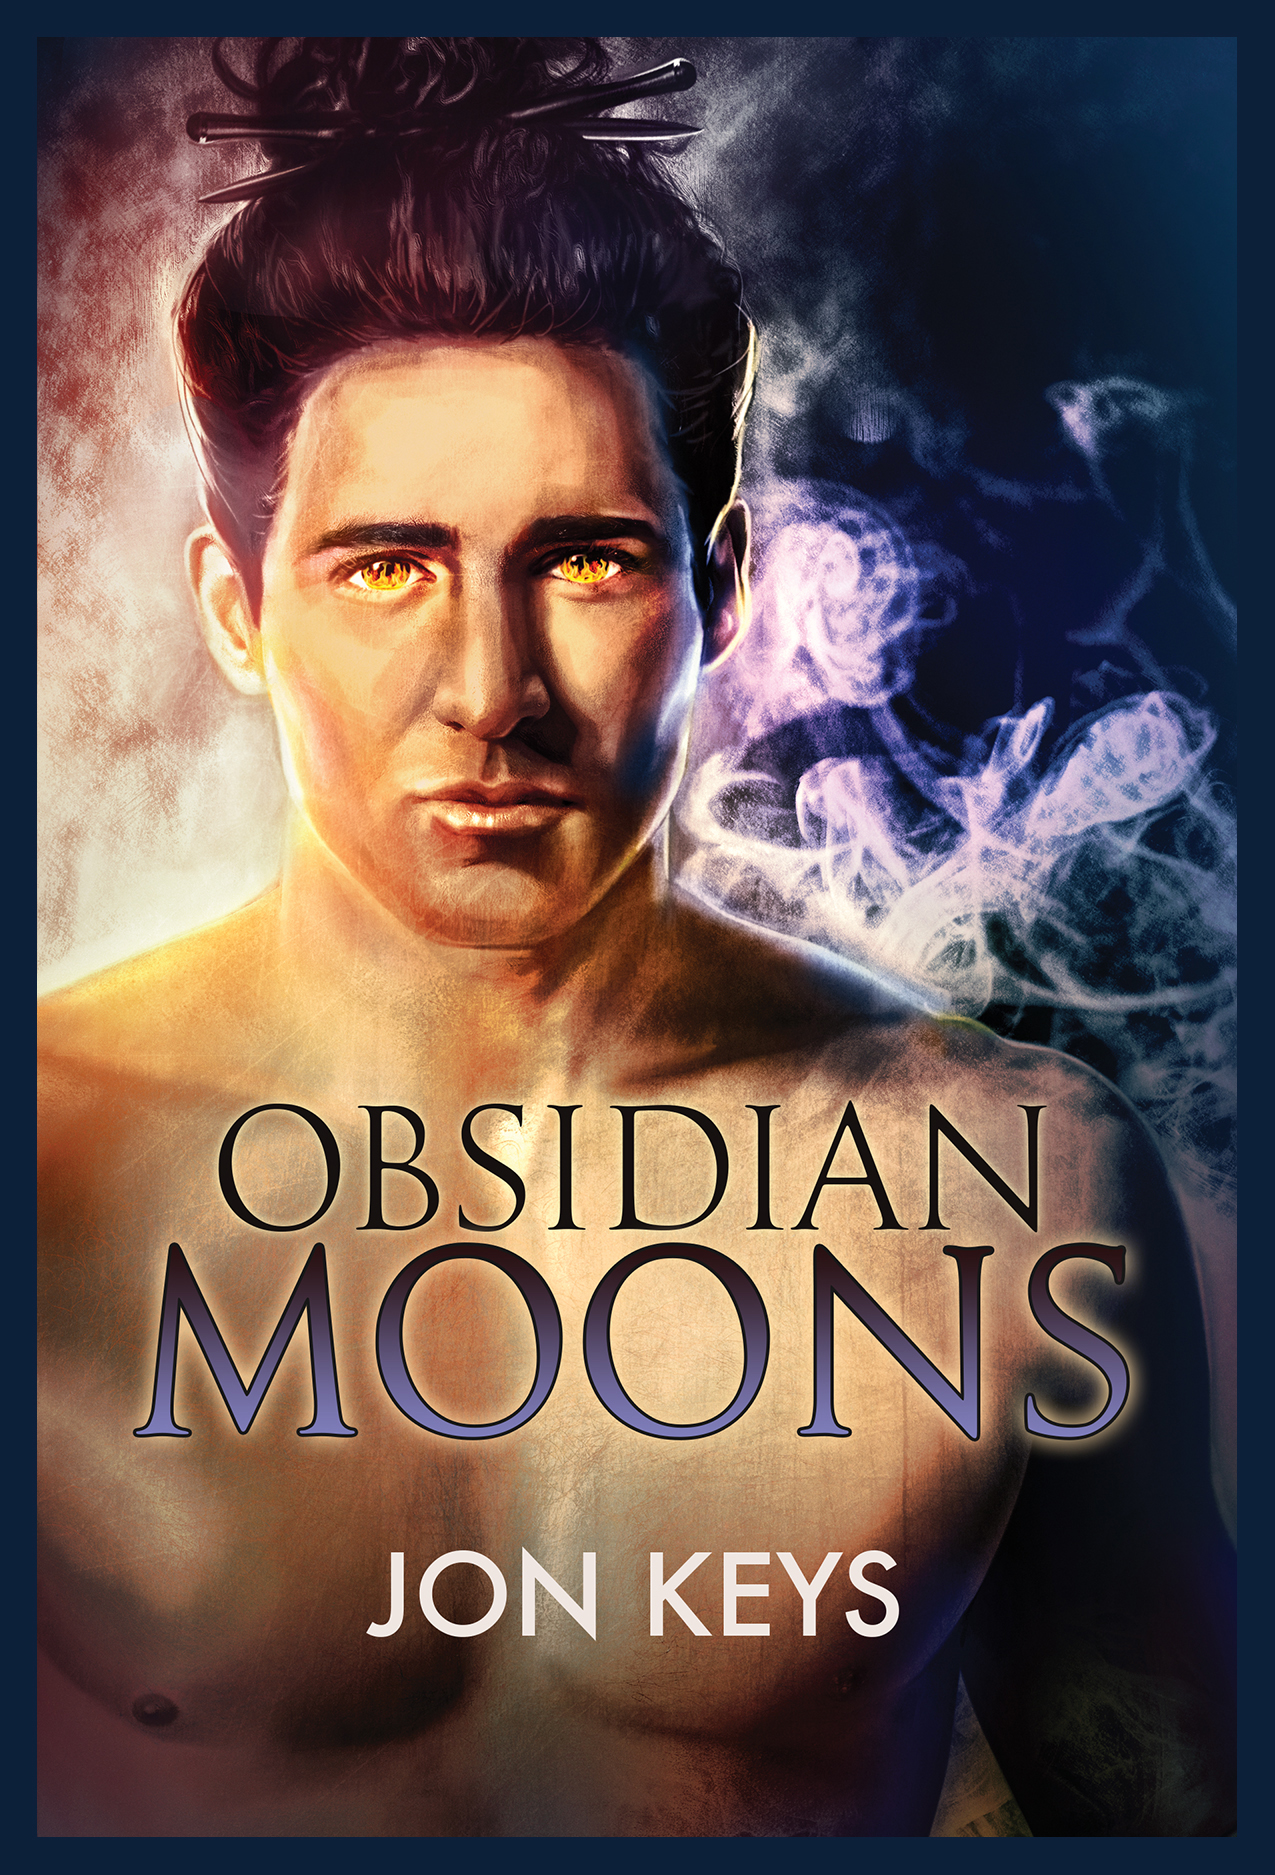 Obsidian Moons by Jon Keys